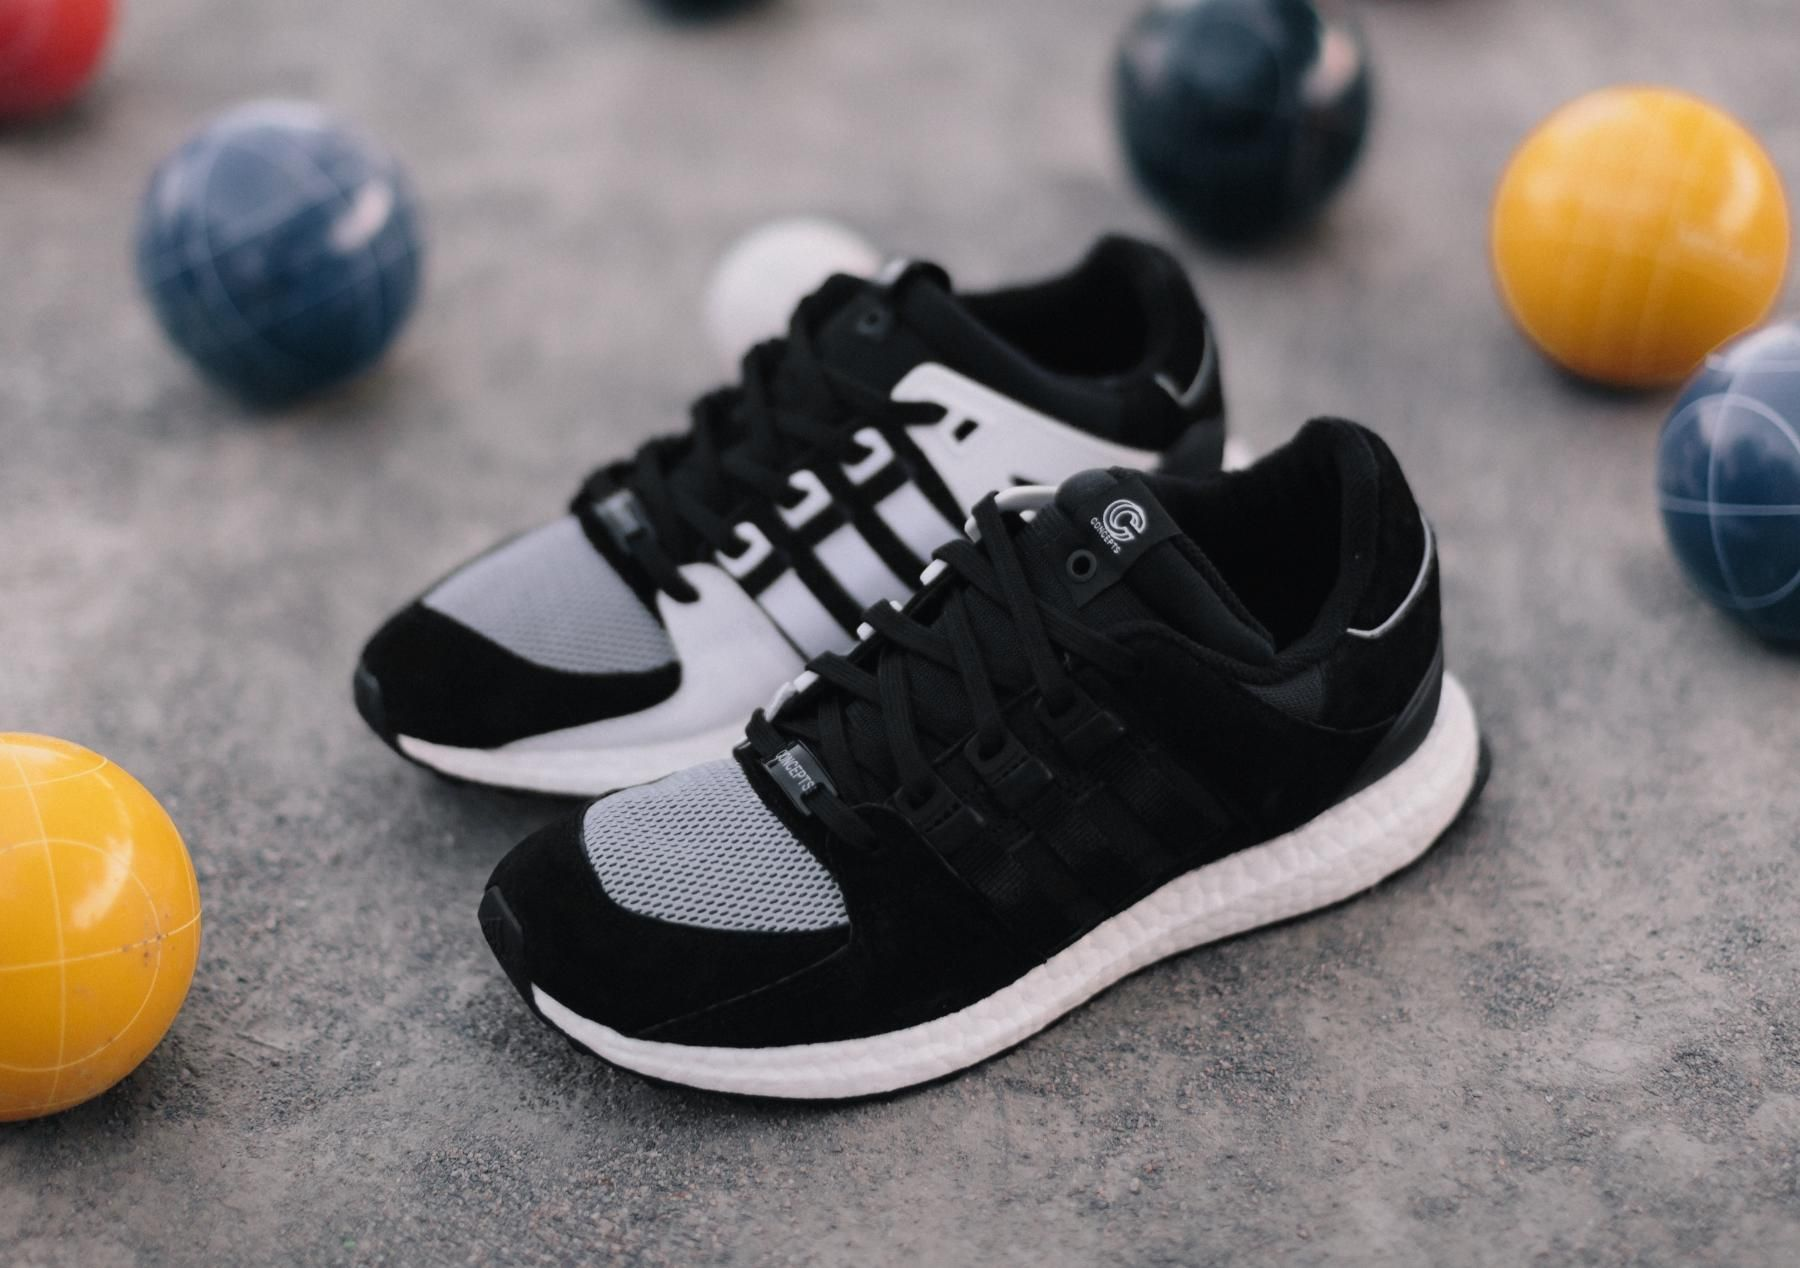 The Concepts x adidas Consortium EQT Support 93/16 Launches This Weekend.